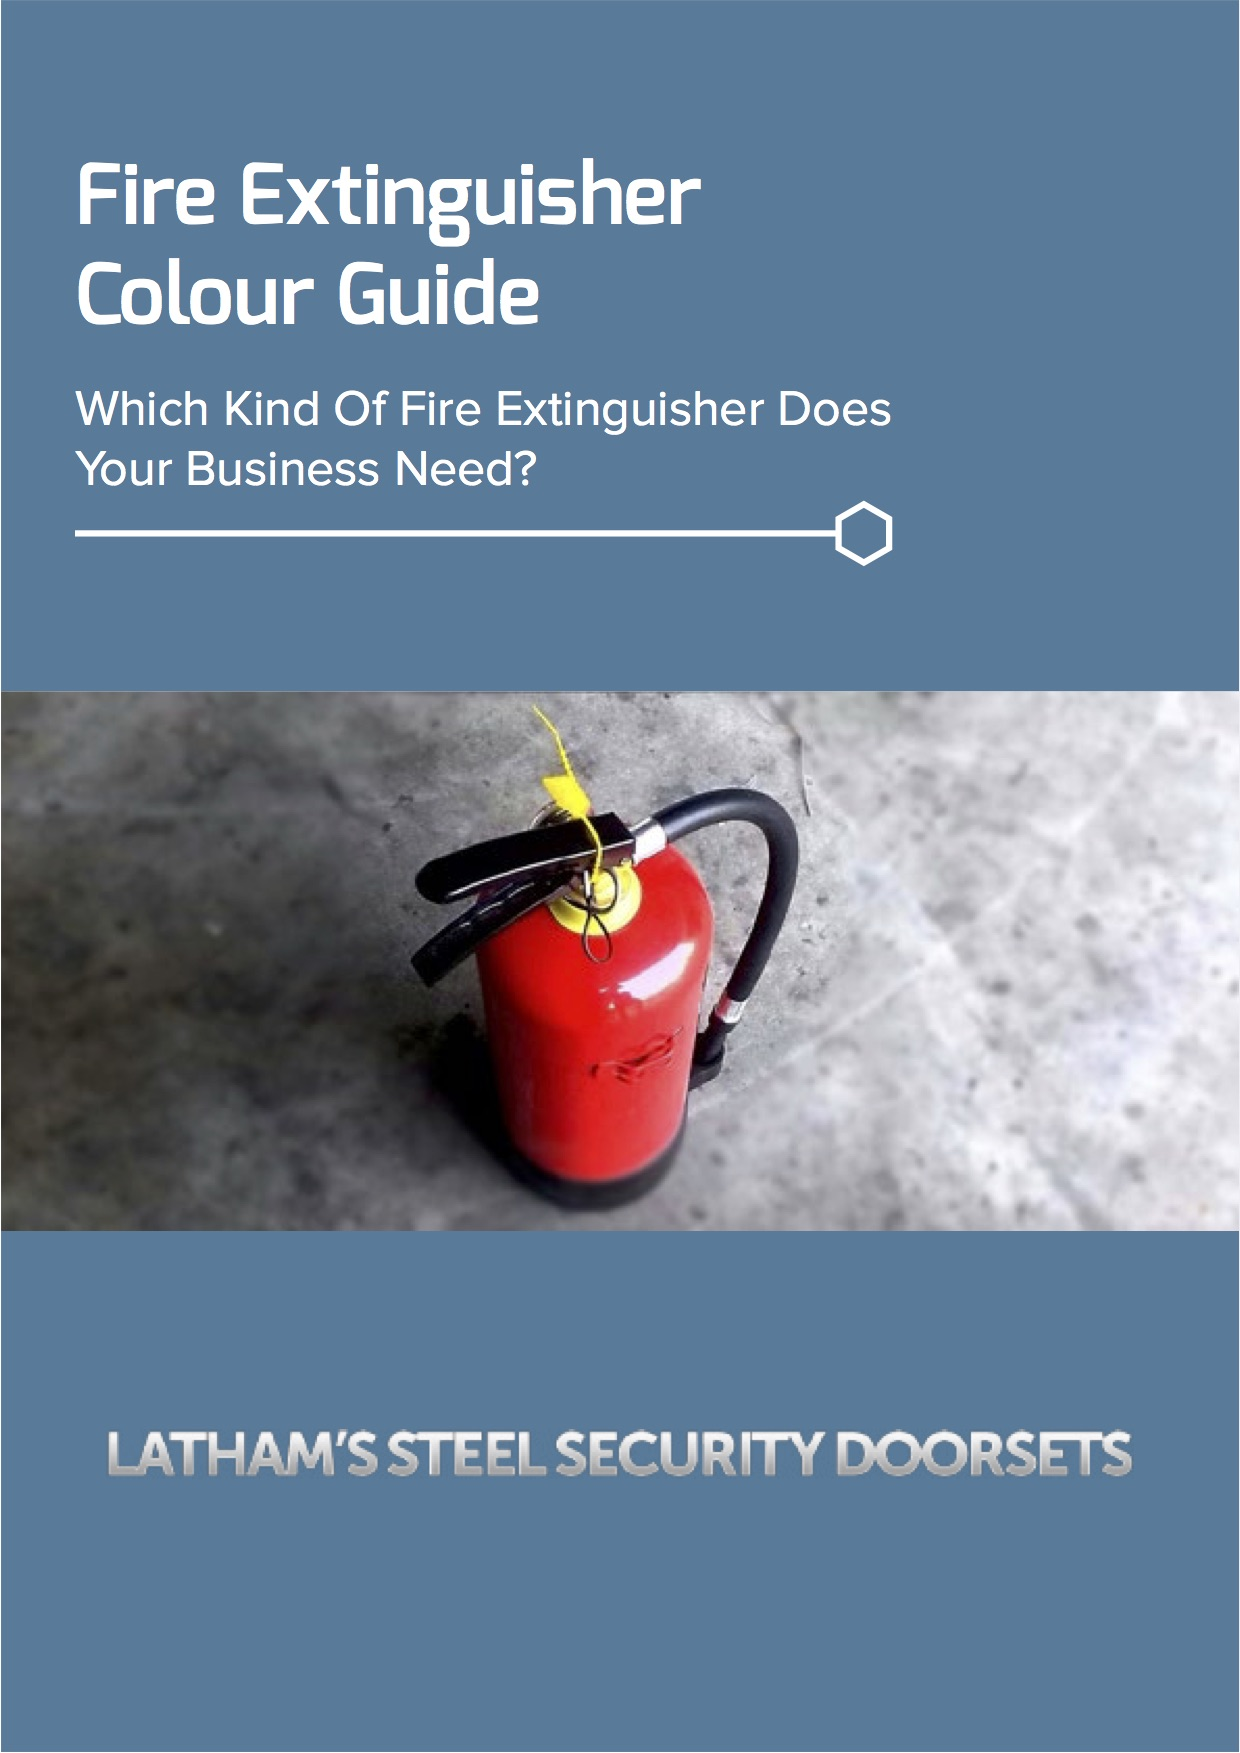 Fire extinguisher colour guide screenshot showing a red fire extinguisher